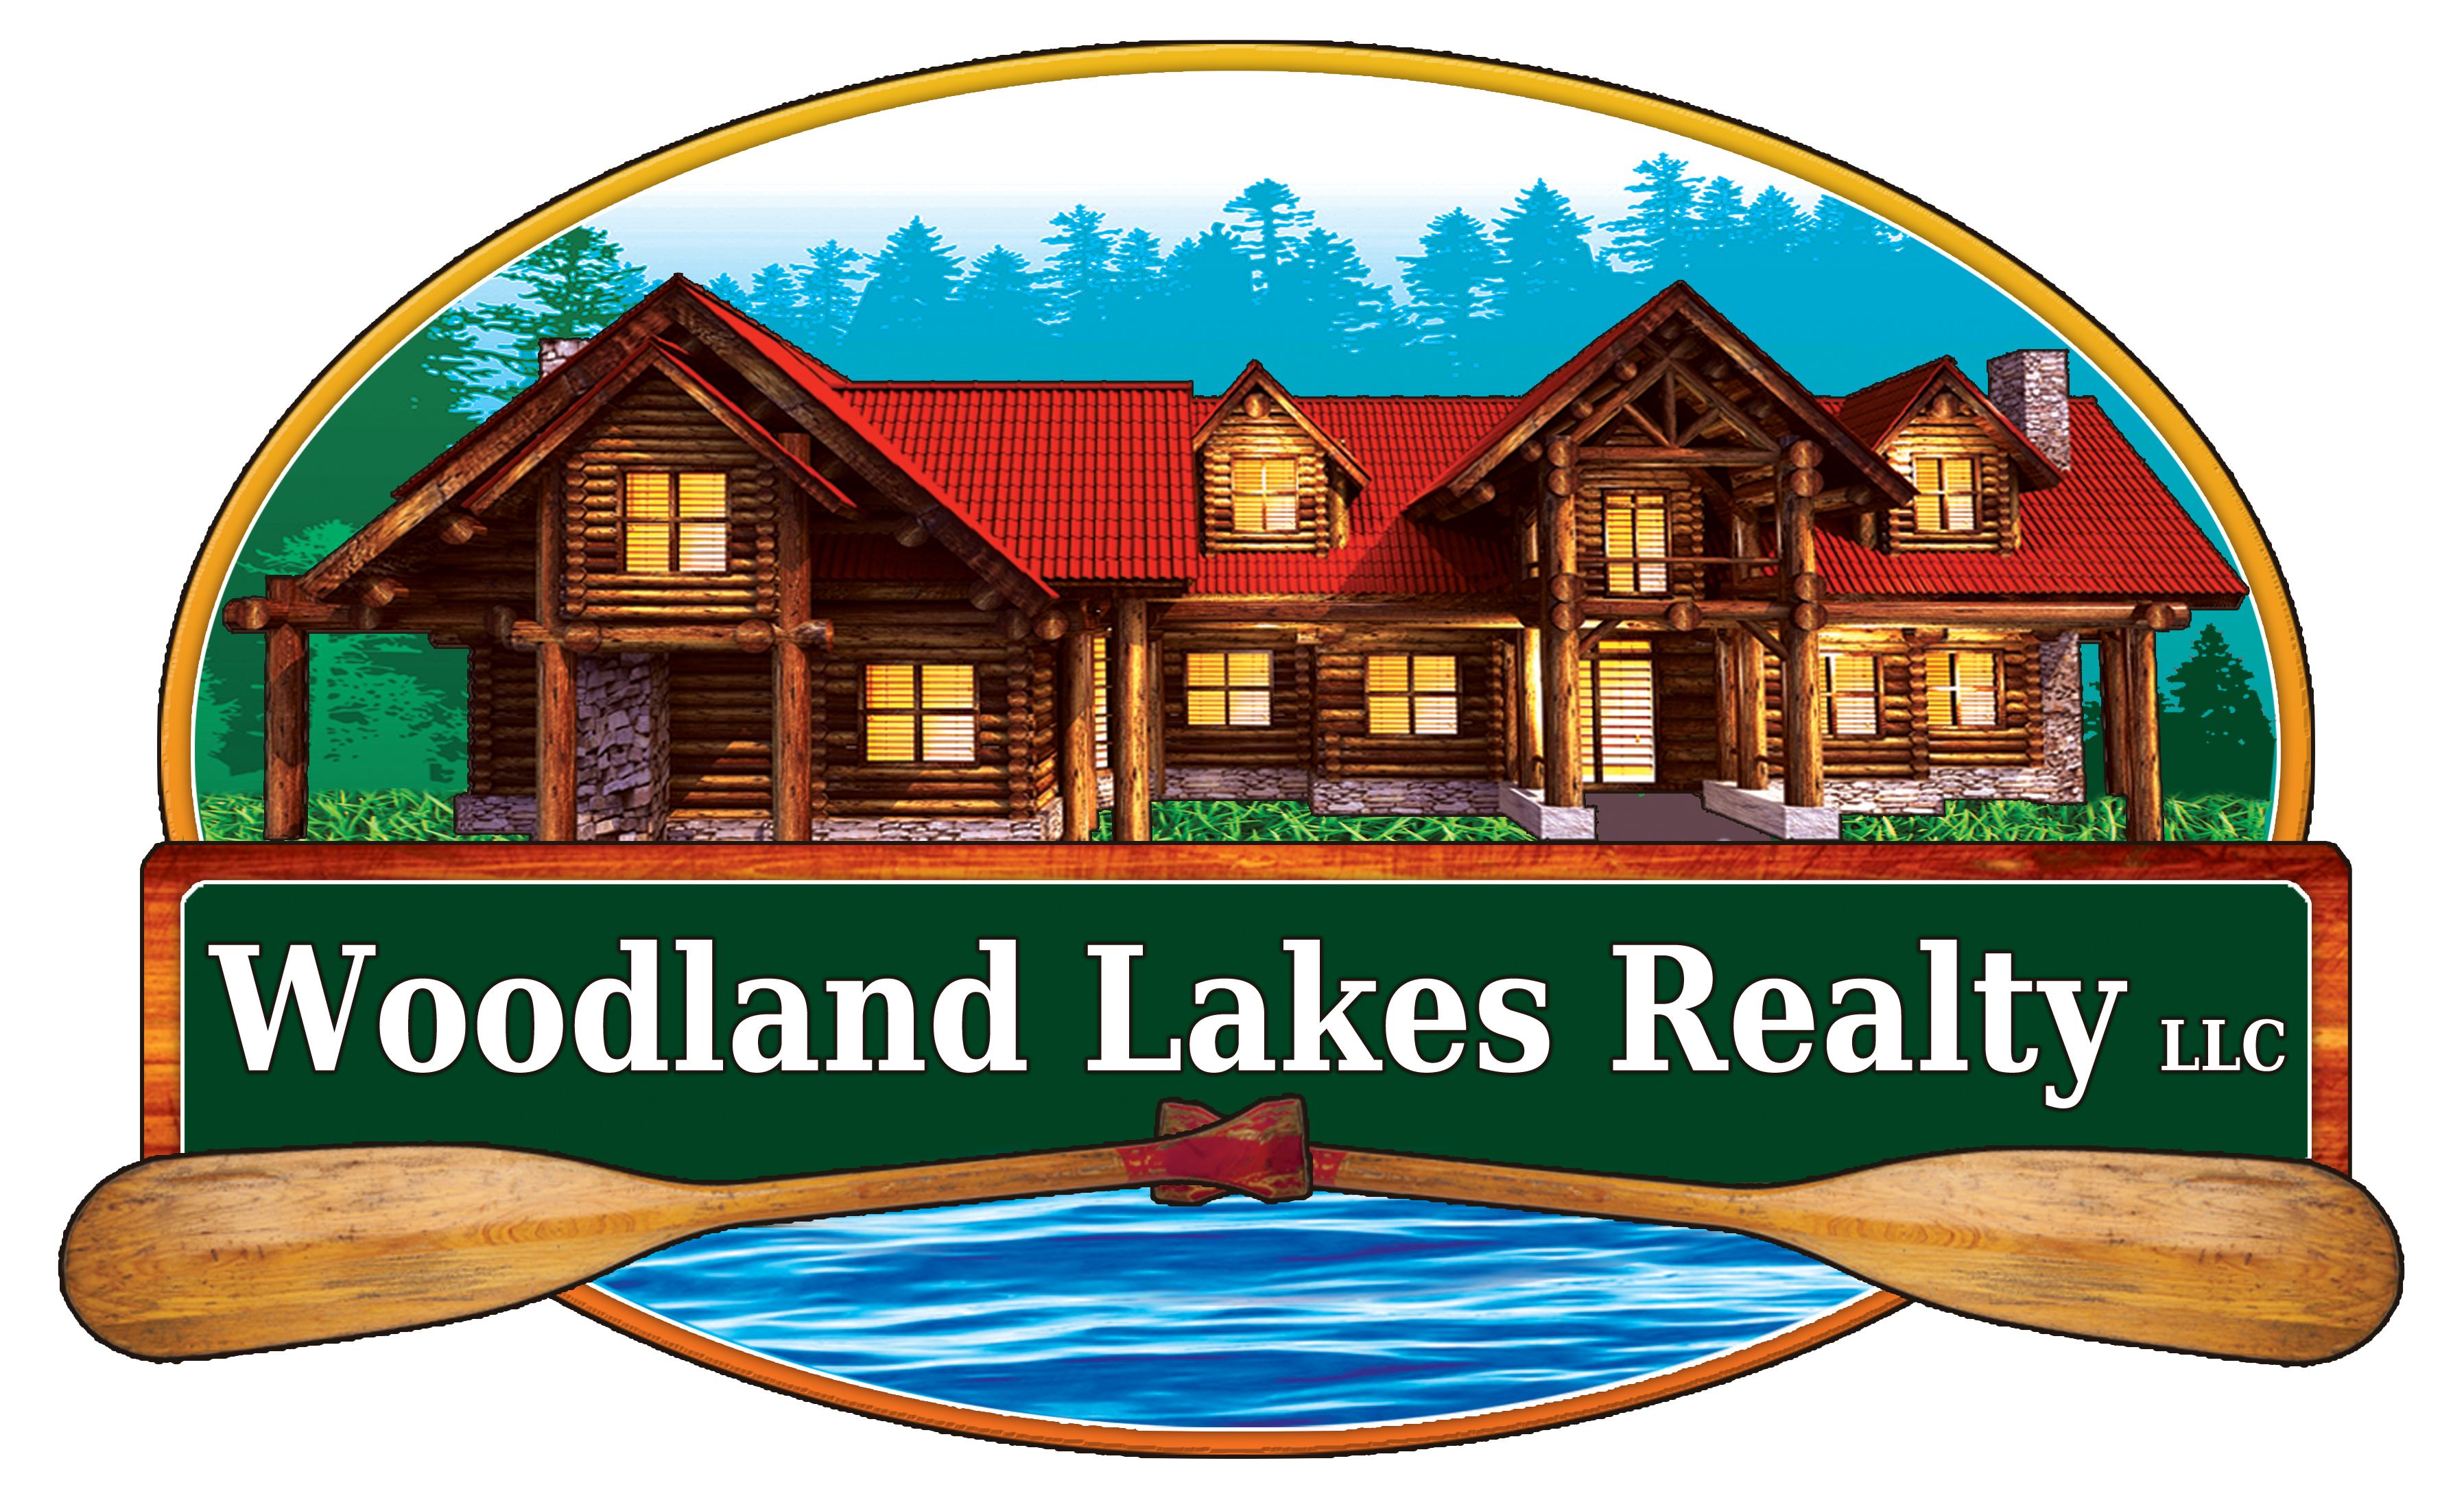 sold sunset cottages pin january whitefish wisconsin ln stone sale homes lake for